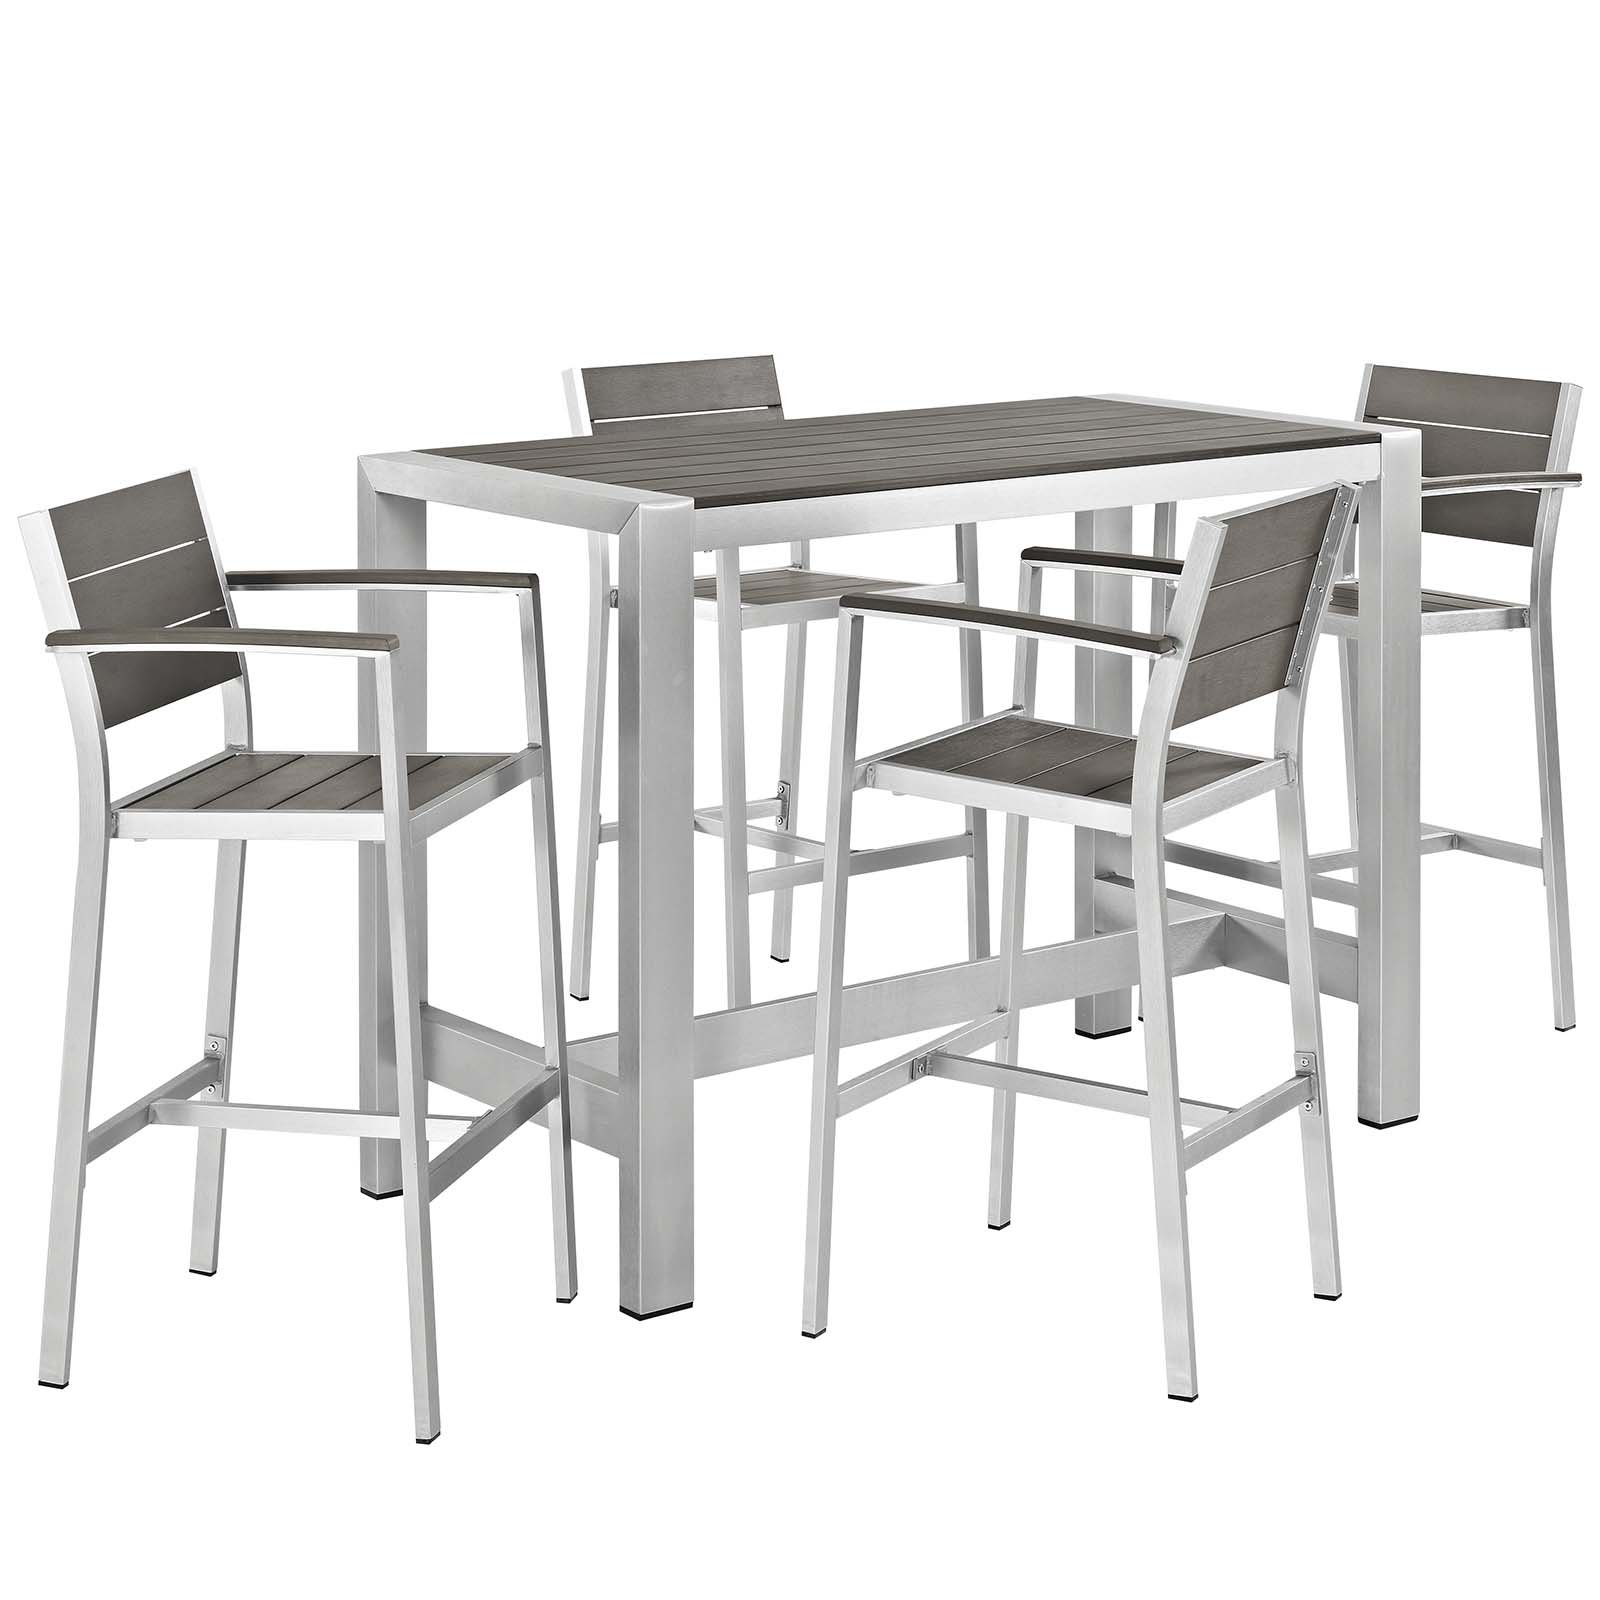 Modway Shore 5-Piece Aluminum Outdoor Patio Pub Bistro Set with Bar Stools in Silver Gray